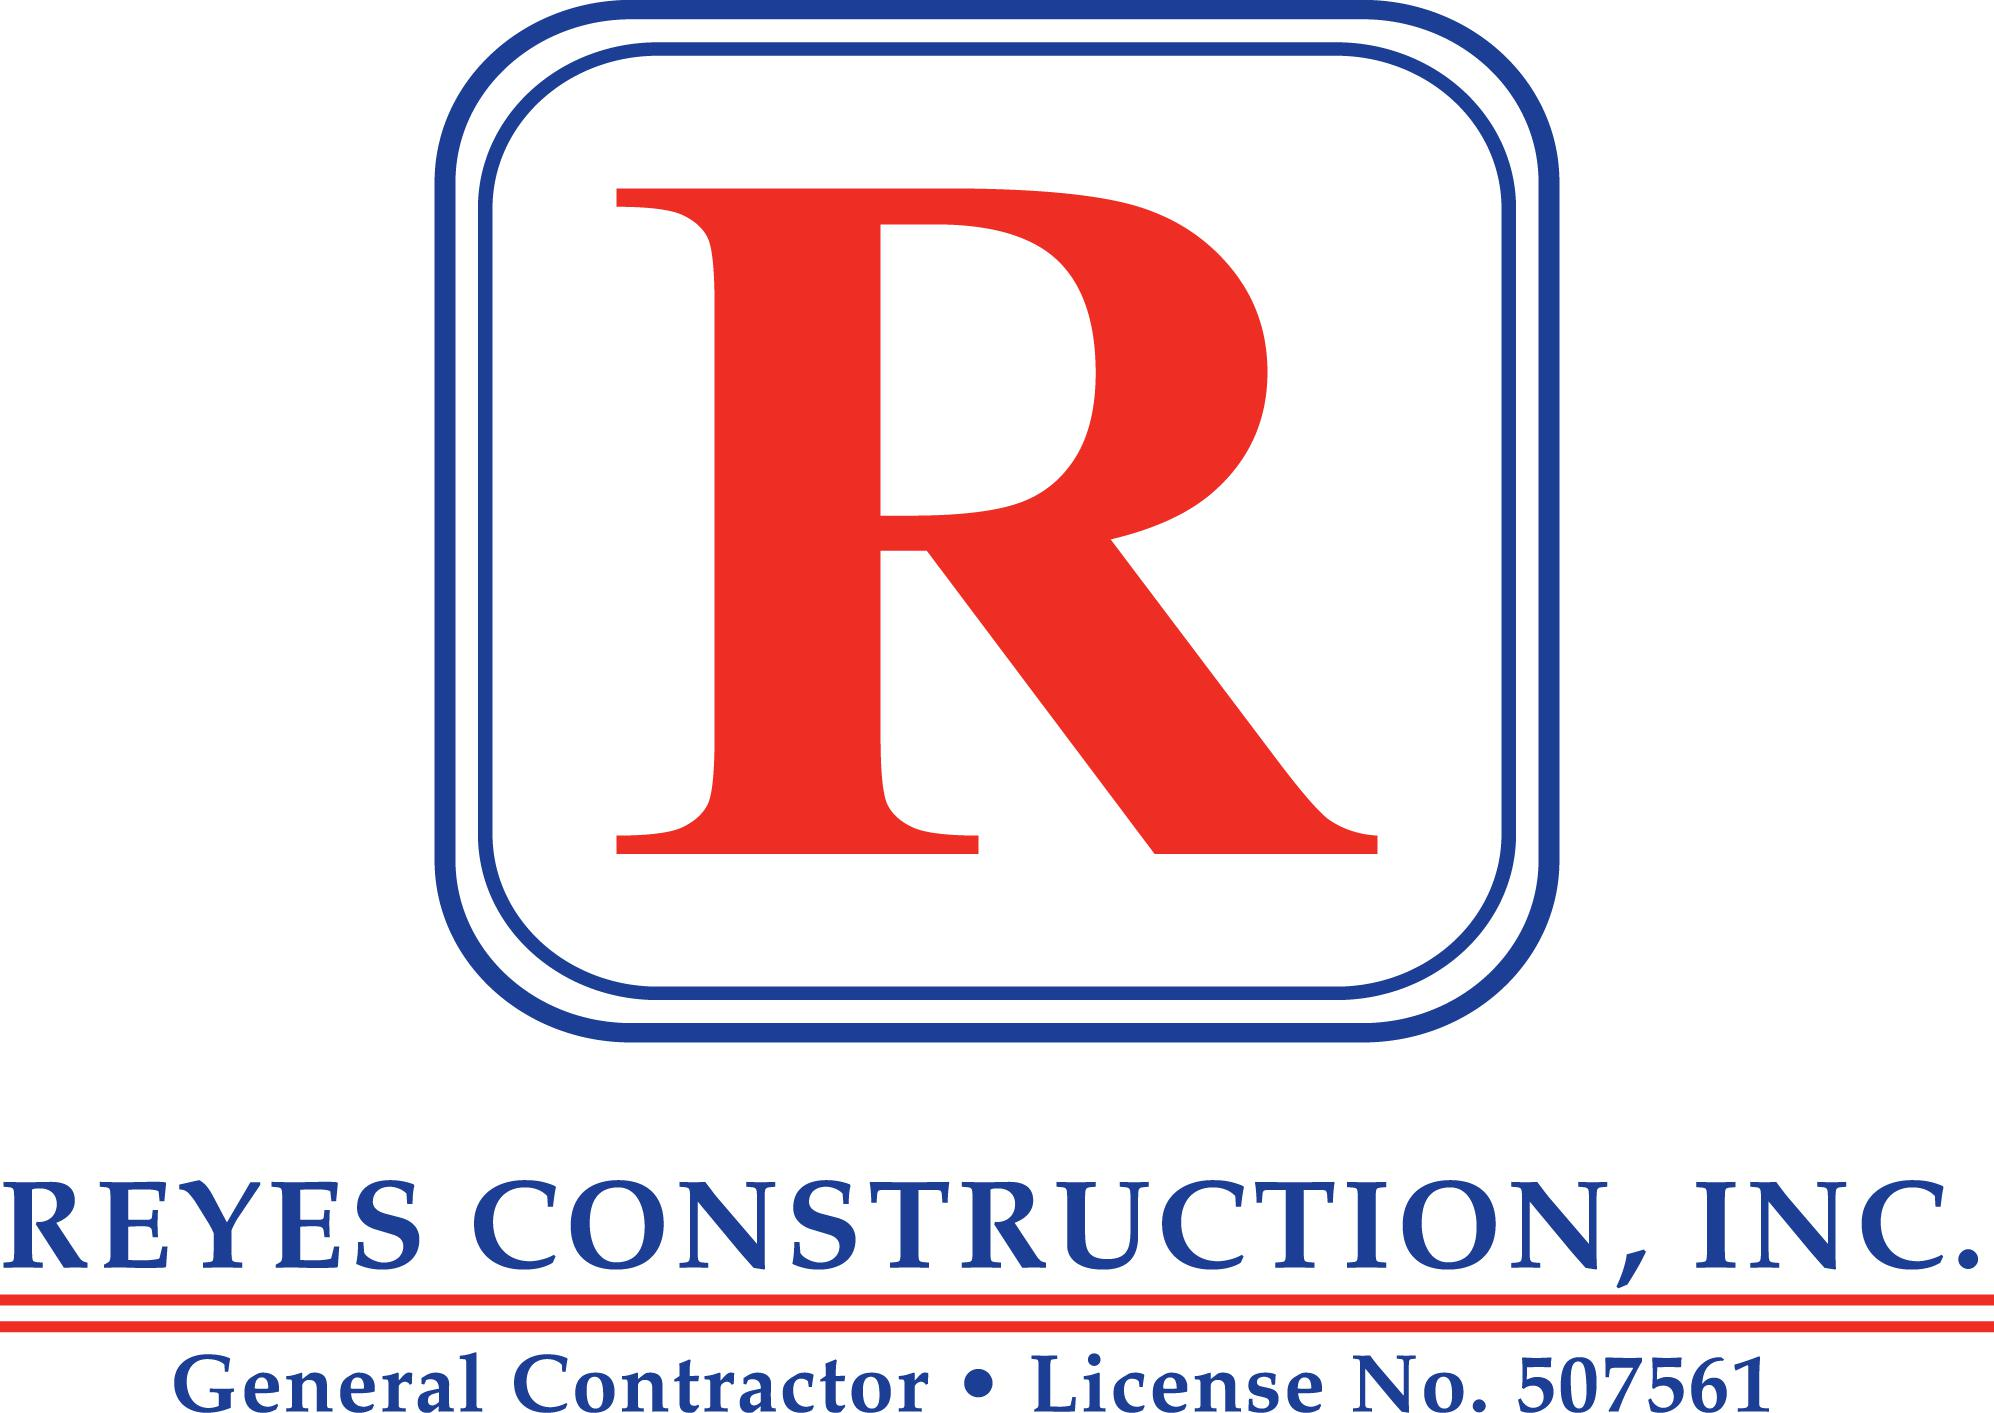 Reyes Construction